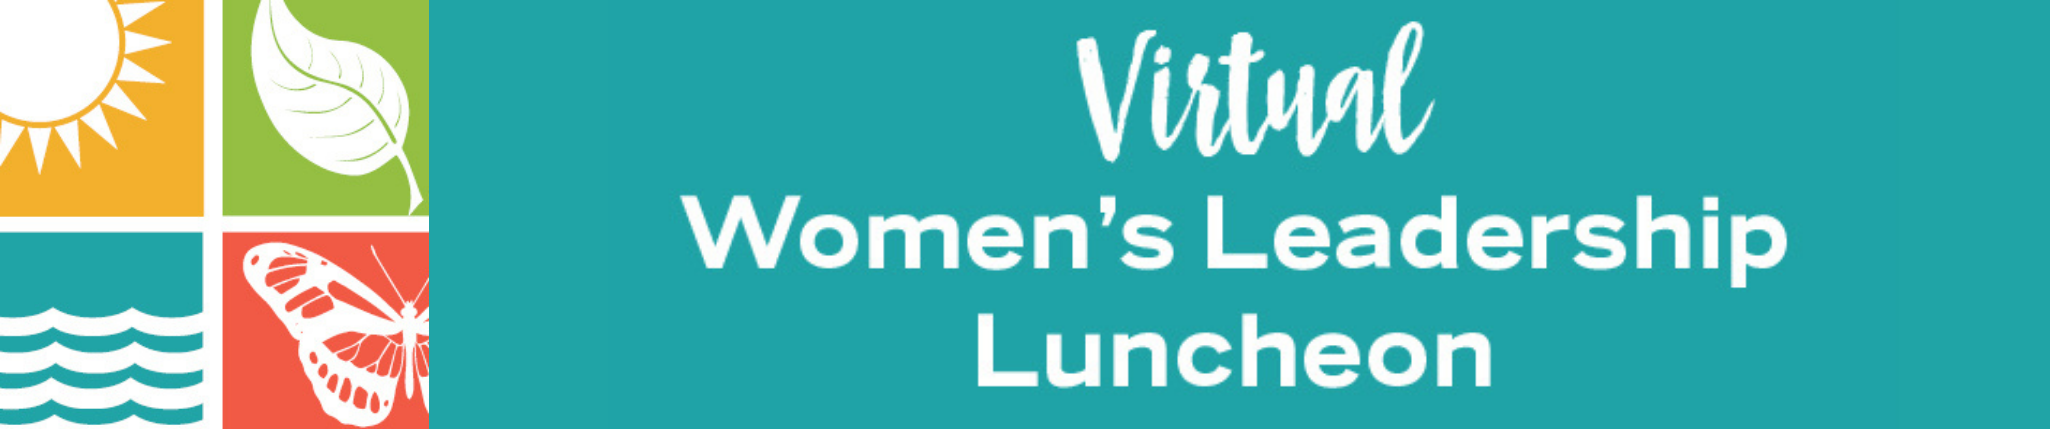 SSND Virtual Women's Leadership Luncheon--St. Louis